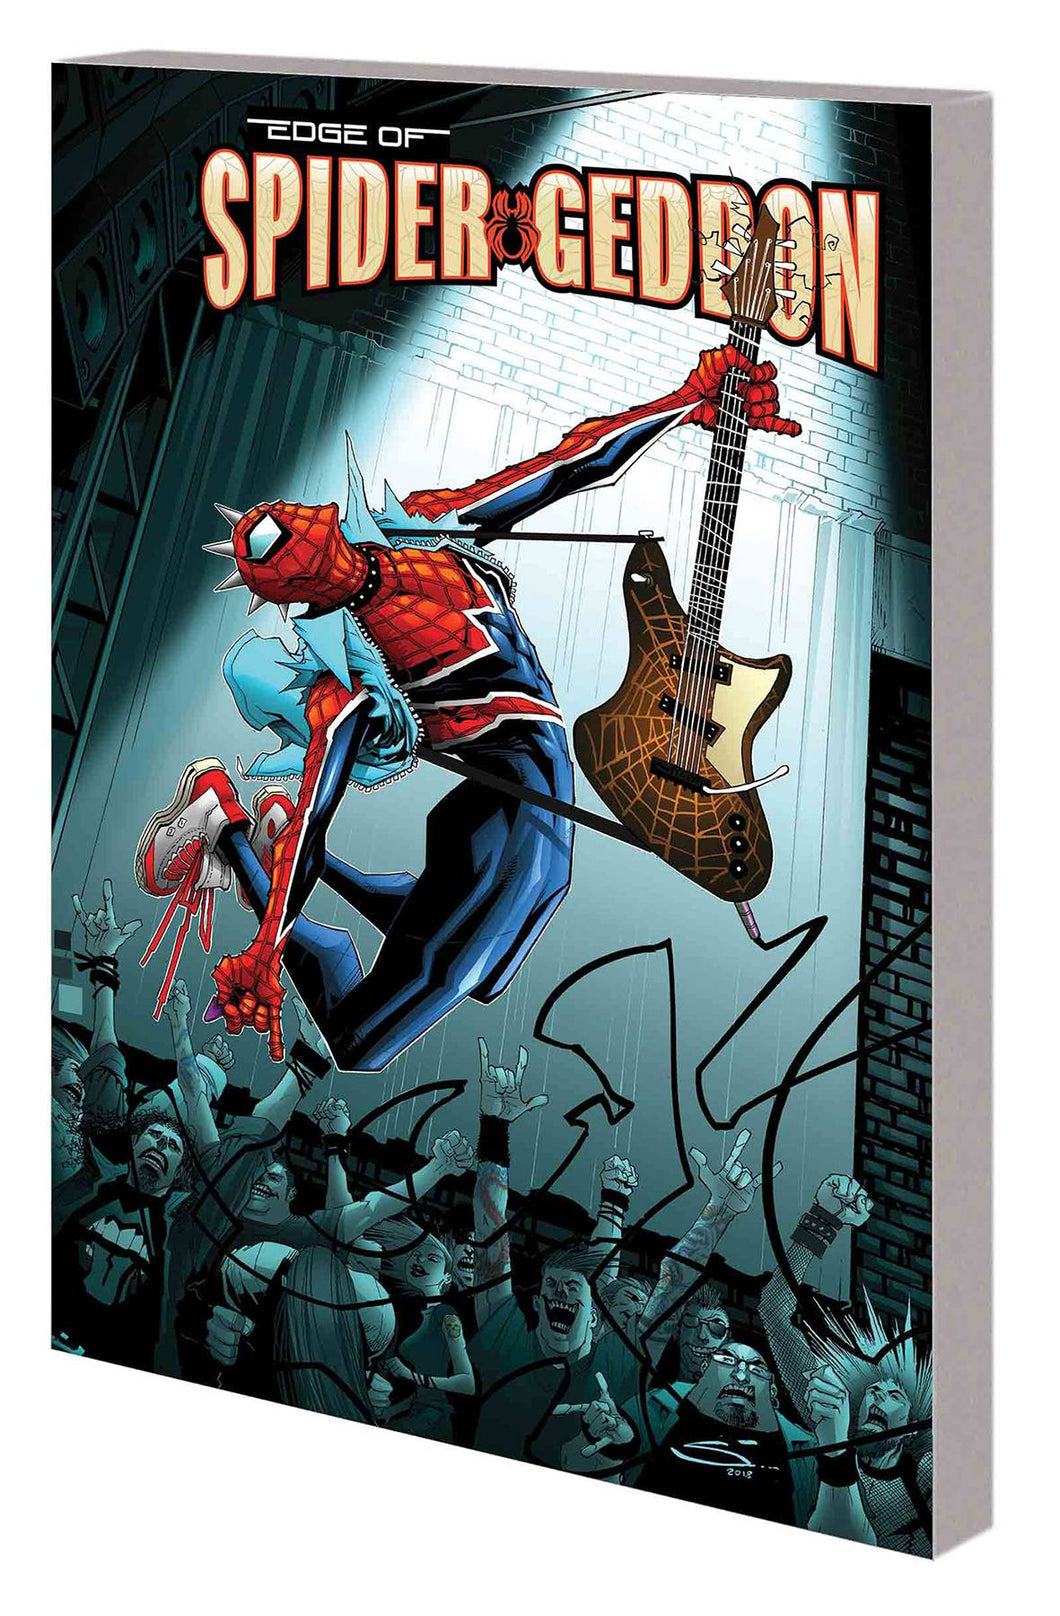 SPIDER-GEDDON TP EDGE OF SPIDER-GEDDON